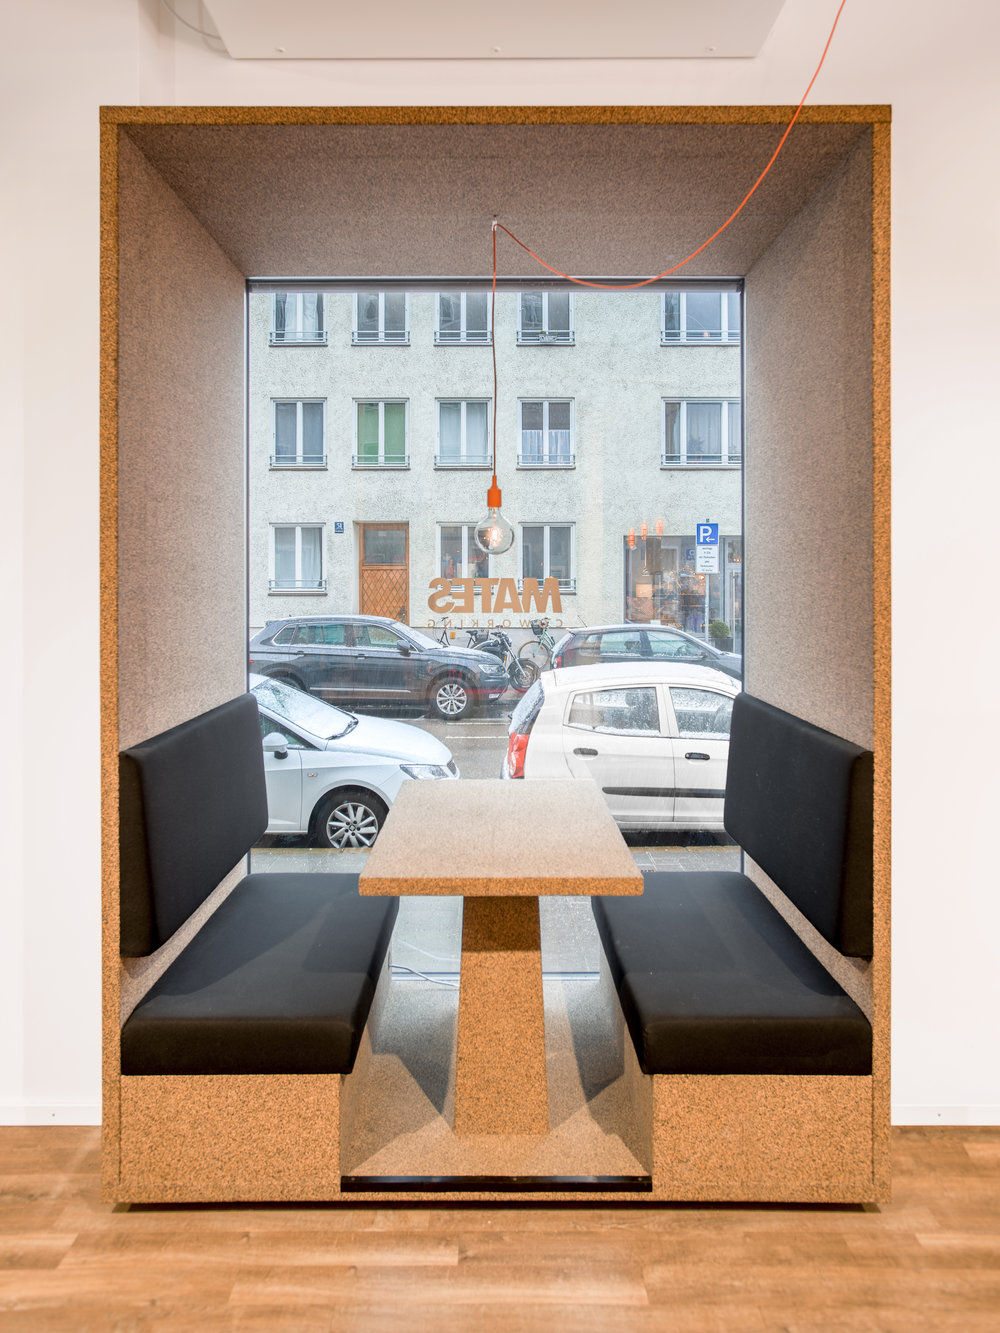 Bosch Automotive Steering - Neue Arbeitswelt 205, green office, alcove, interior architecture, design, blue